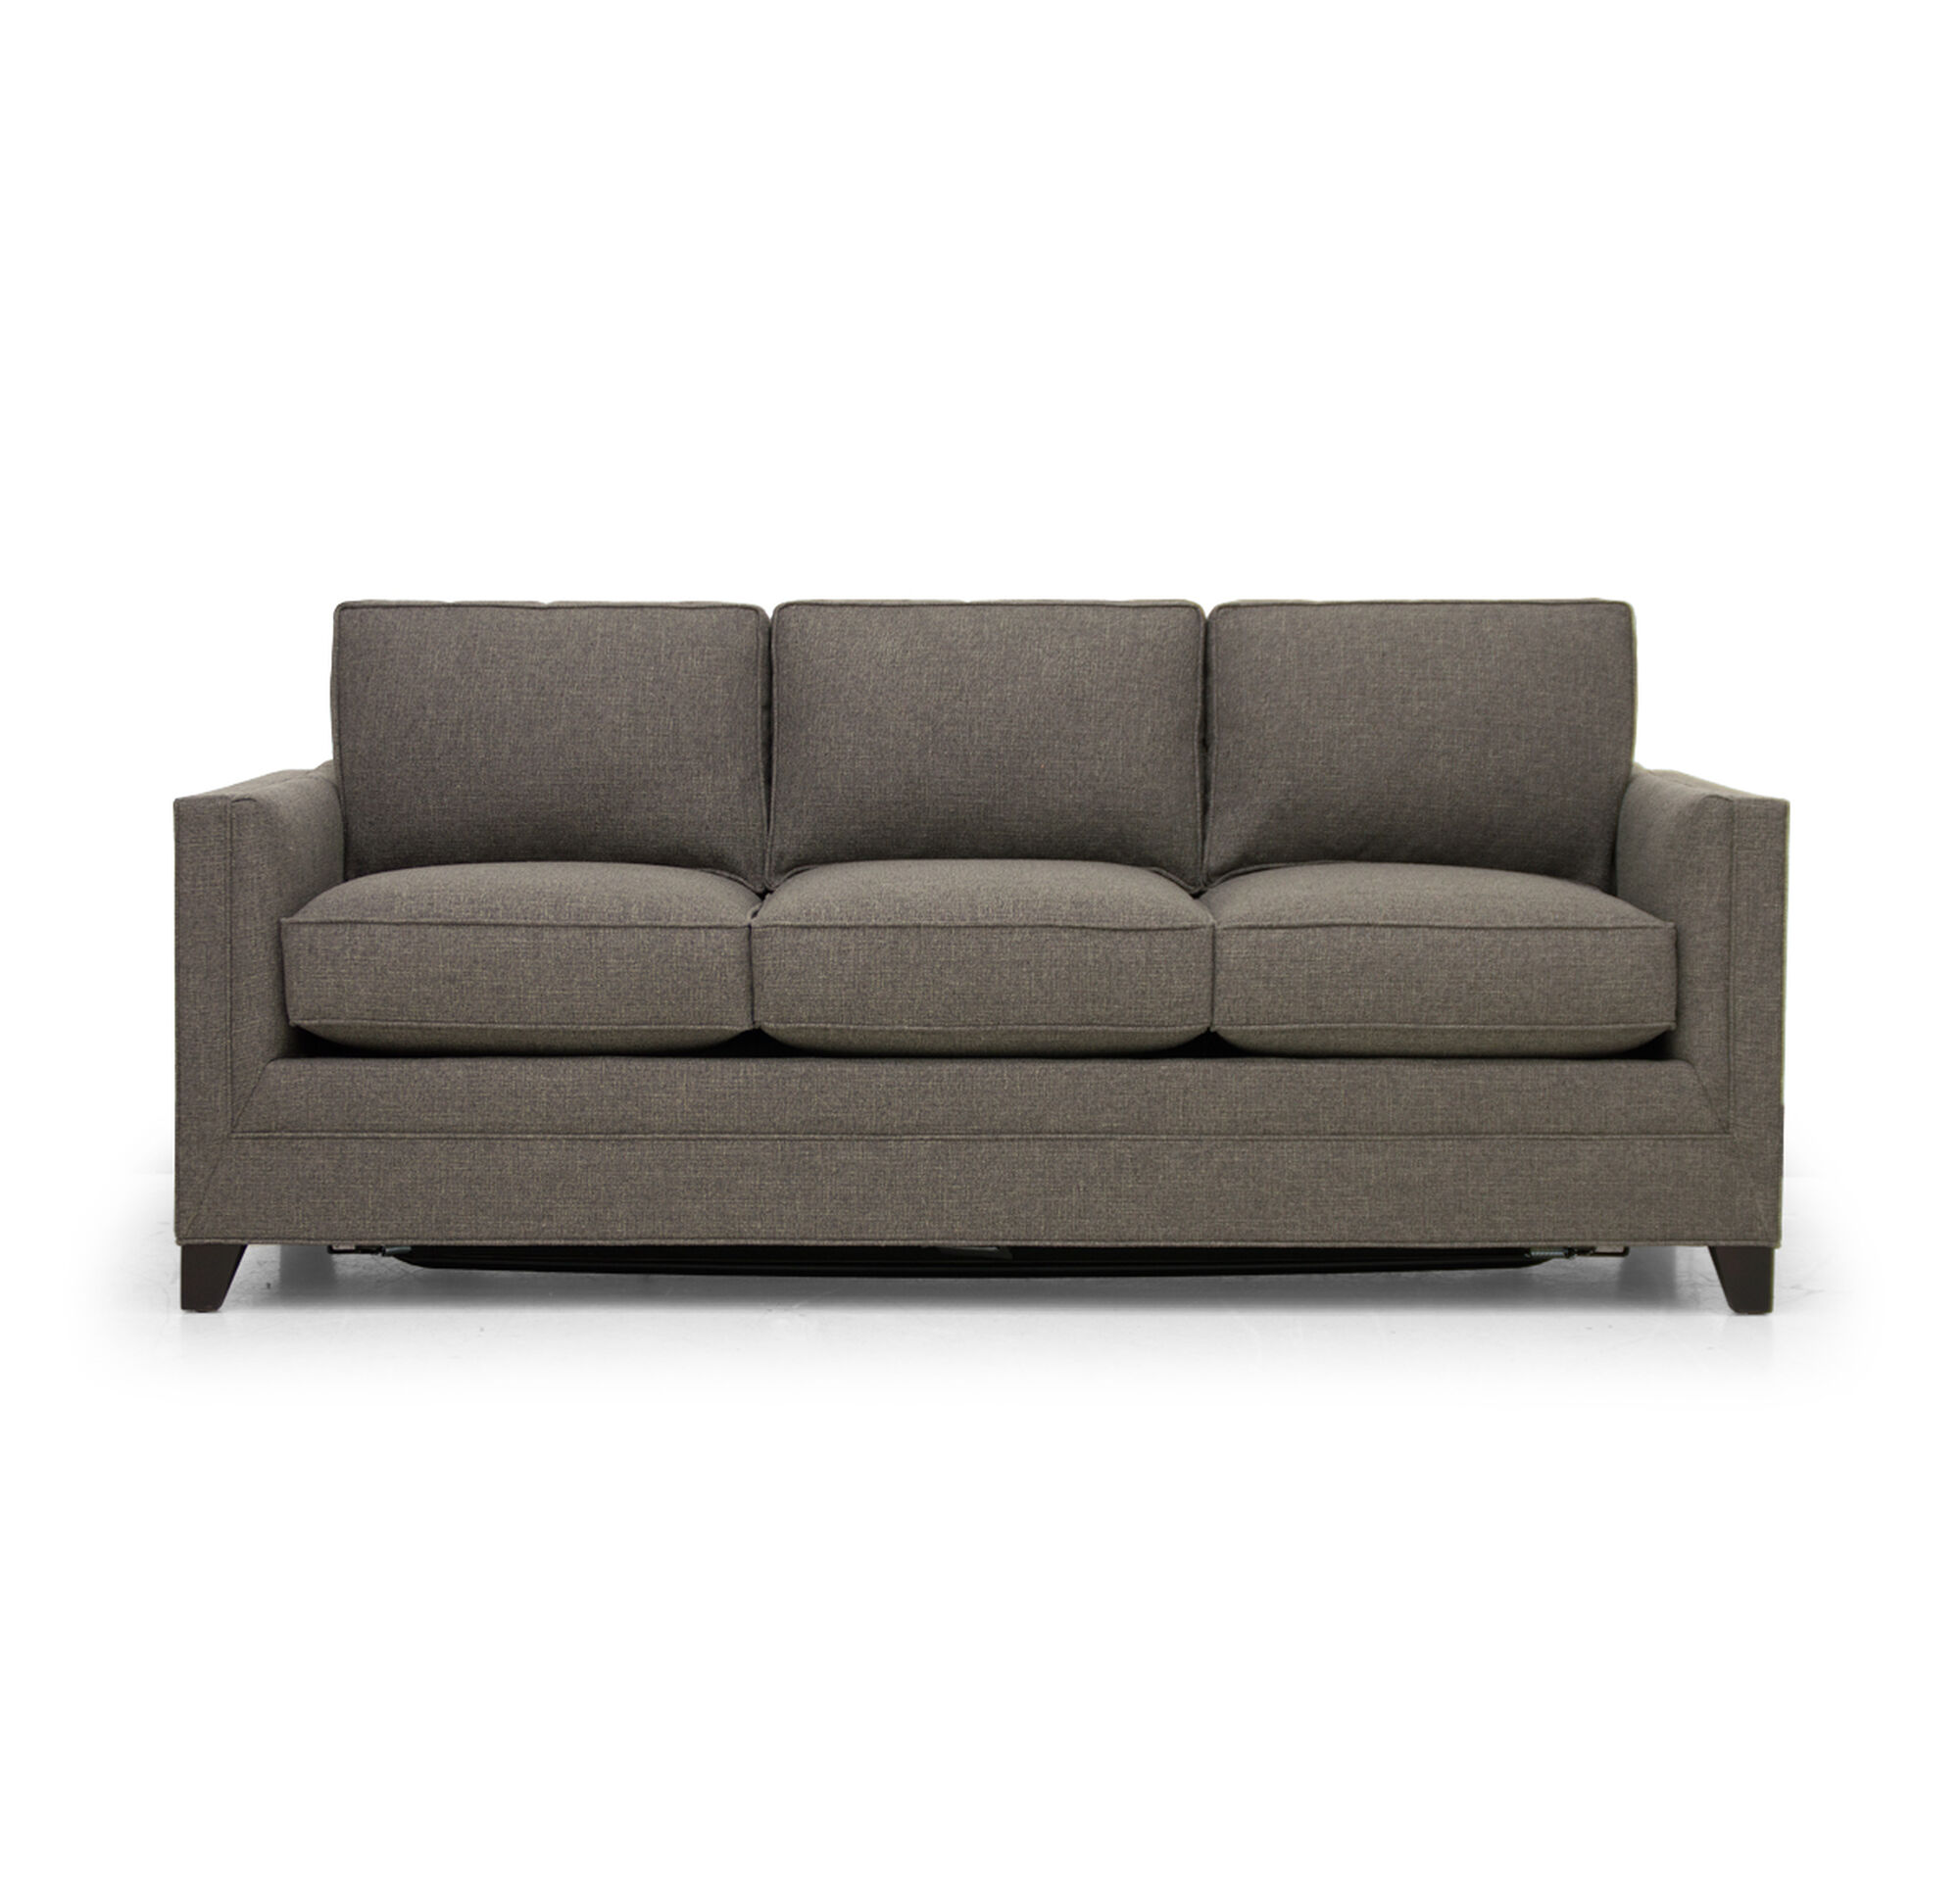 Reese Super Luxe Queen Sleeper Sofa Hi Res